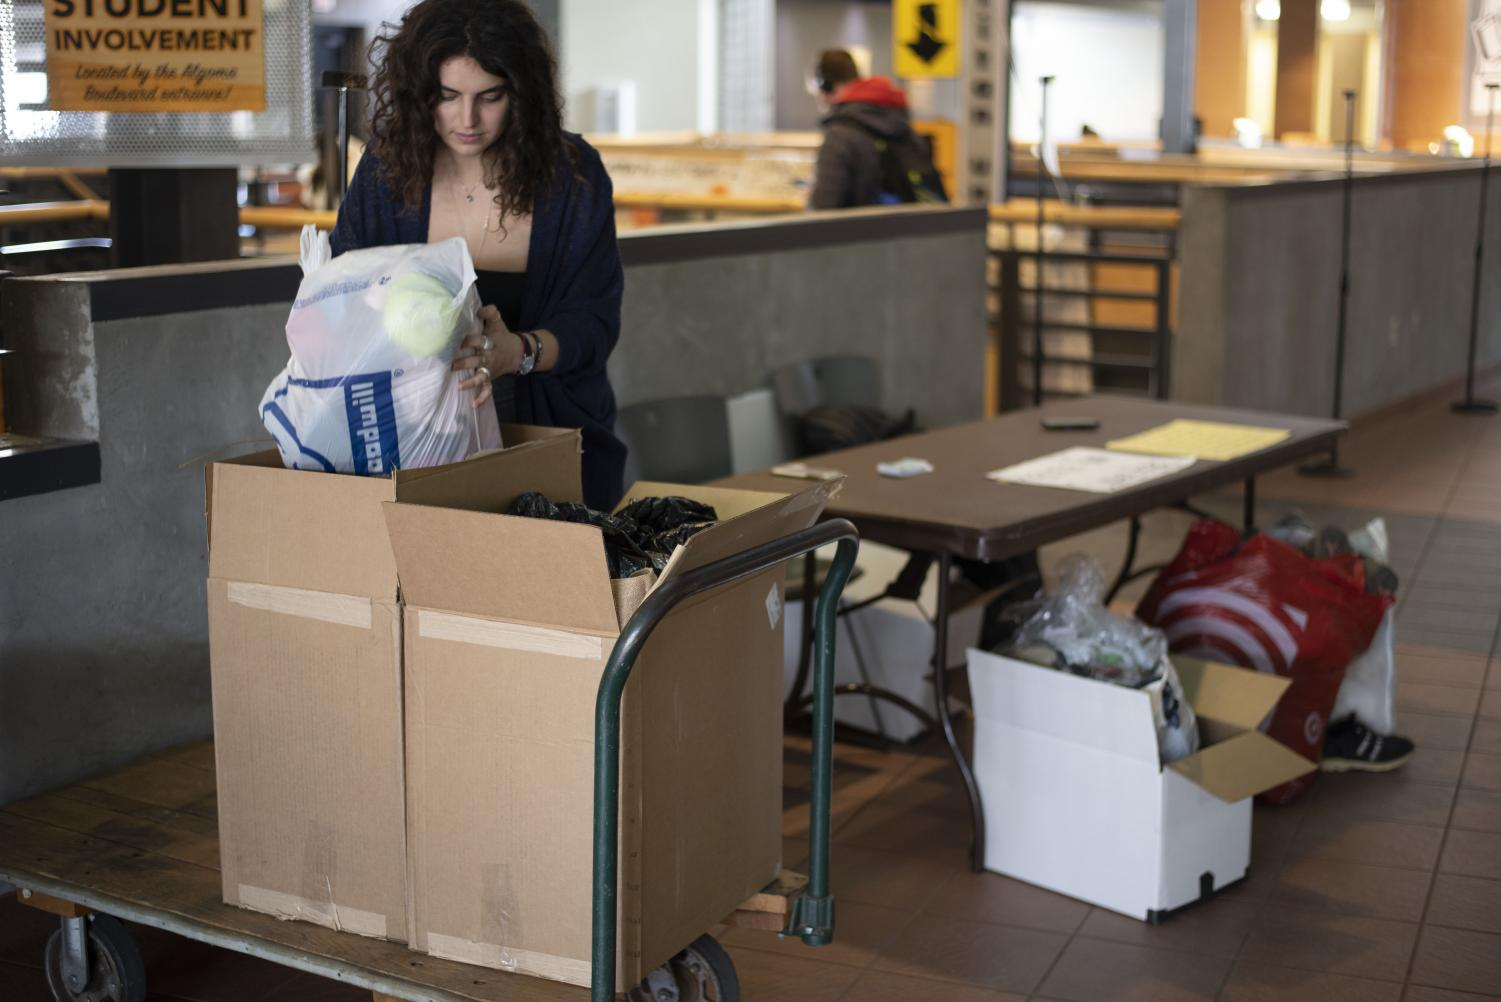 Mary-Rachel Novak, a Clothes the Loop volunteer, organizes donations for a recycling program.